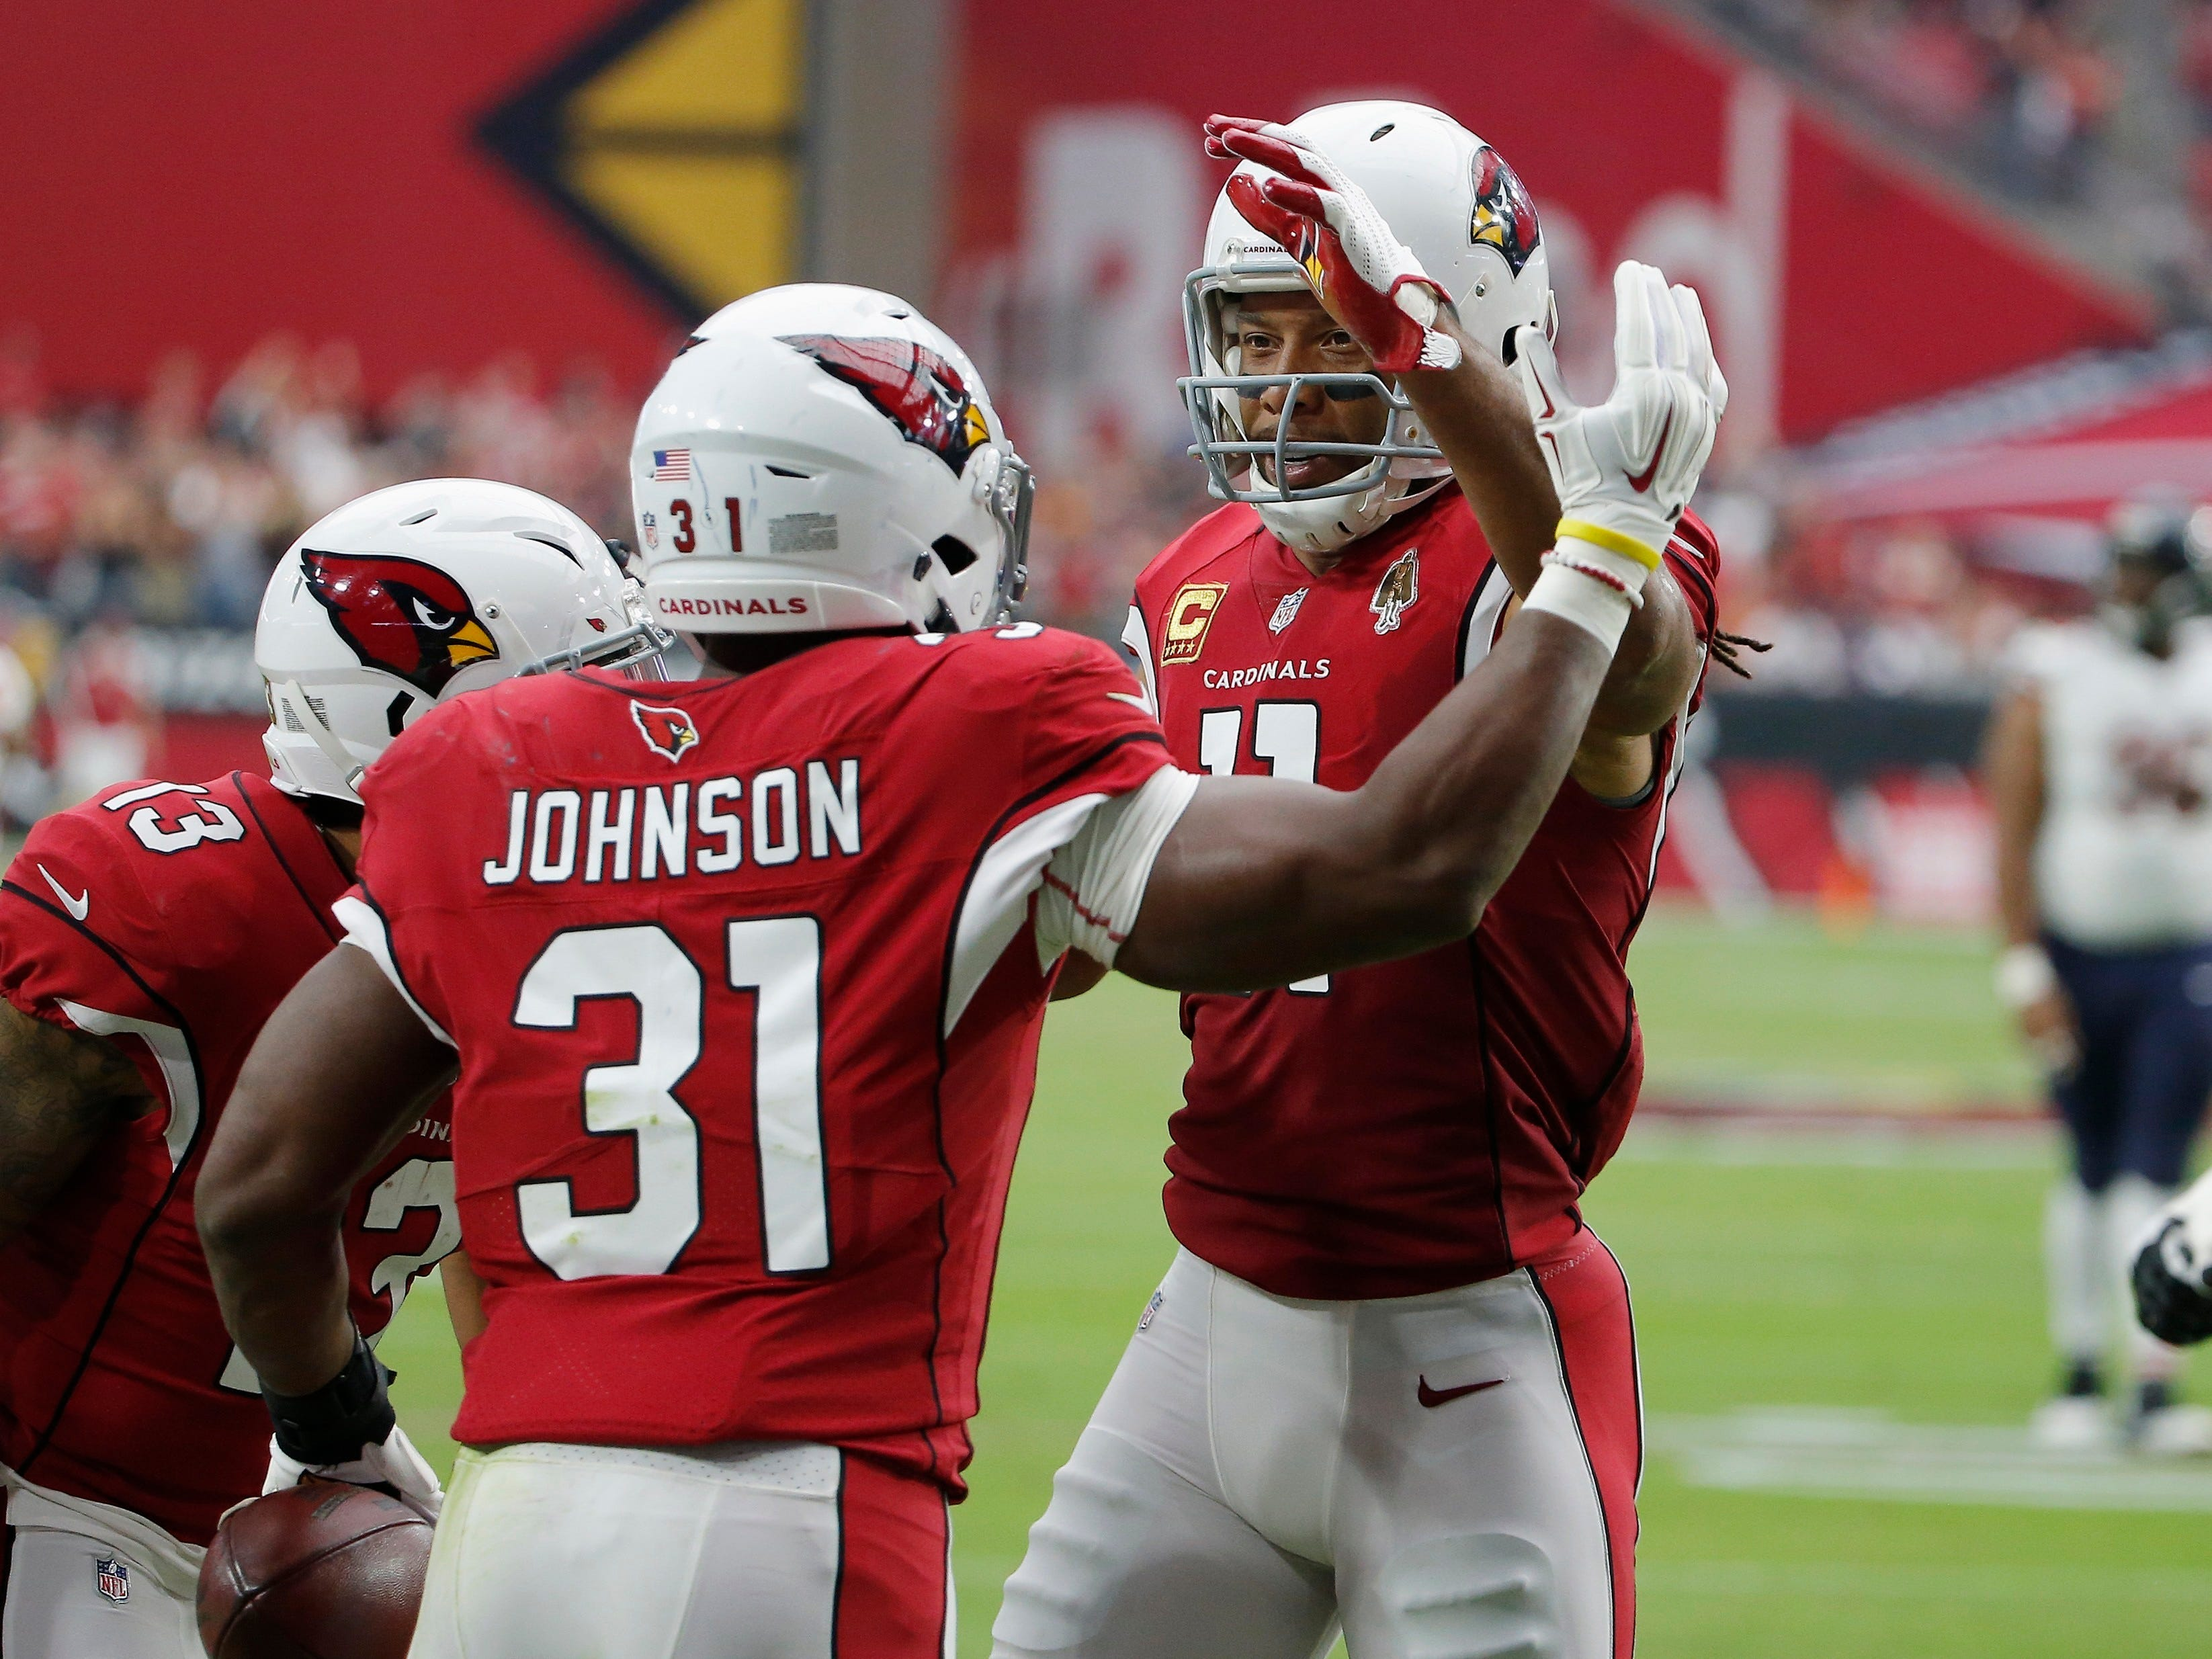 Arizona Cardinals running back David Johnson (31) celebrates his touchdown catch against the Chicago Bears with Larry Fitzgerald, right, and Christian Kirk (13) during the first half of an NFL football game, Sunday, Sept. 23, 2018, in Glendale, Ariz. (AP Photo/Rick Scuteri)